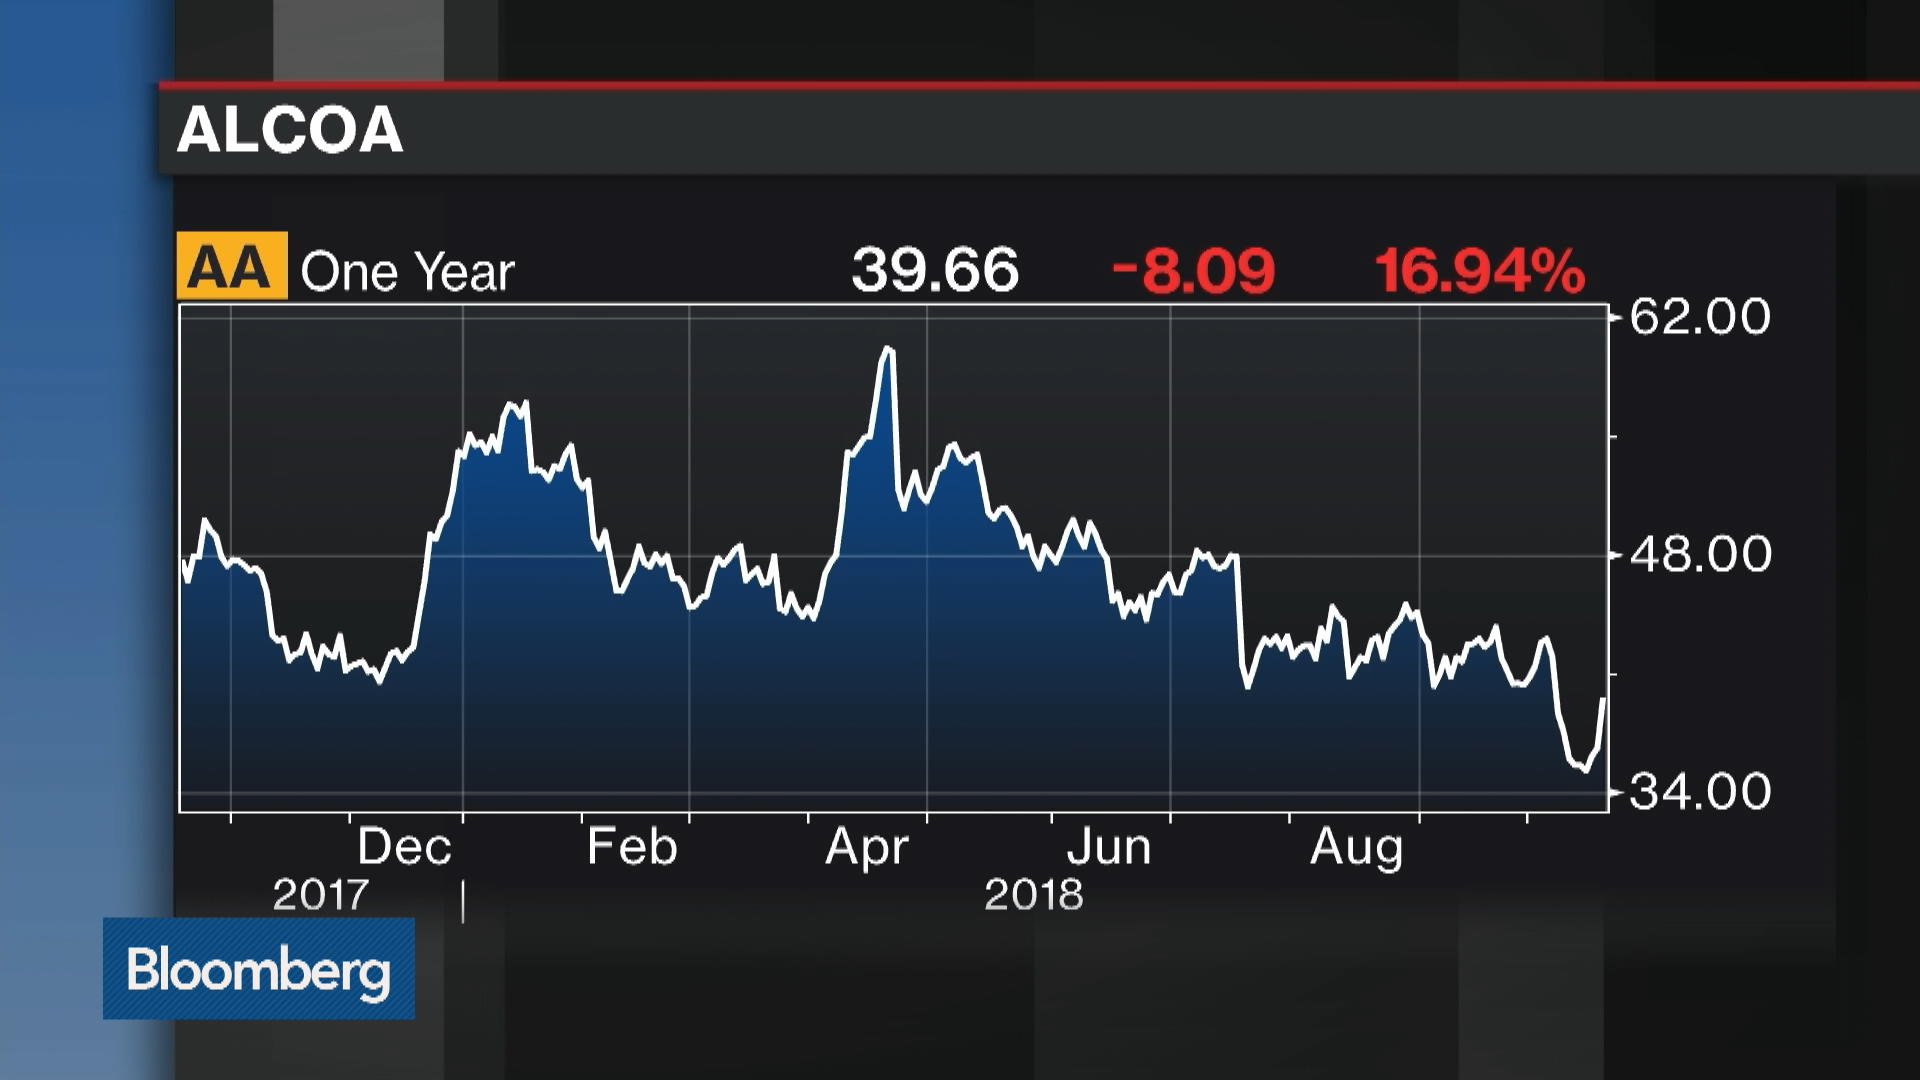 Aanew York Stock Quote Alcoa Corp Bloomberg Markets